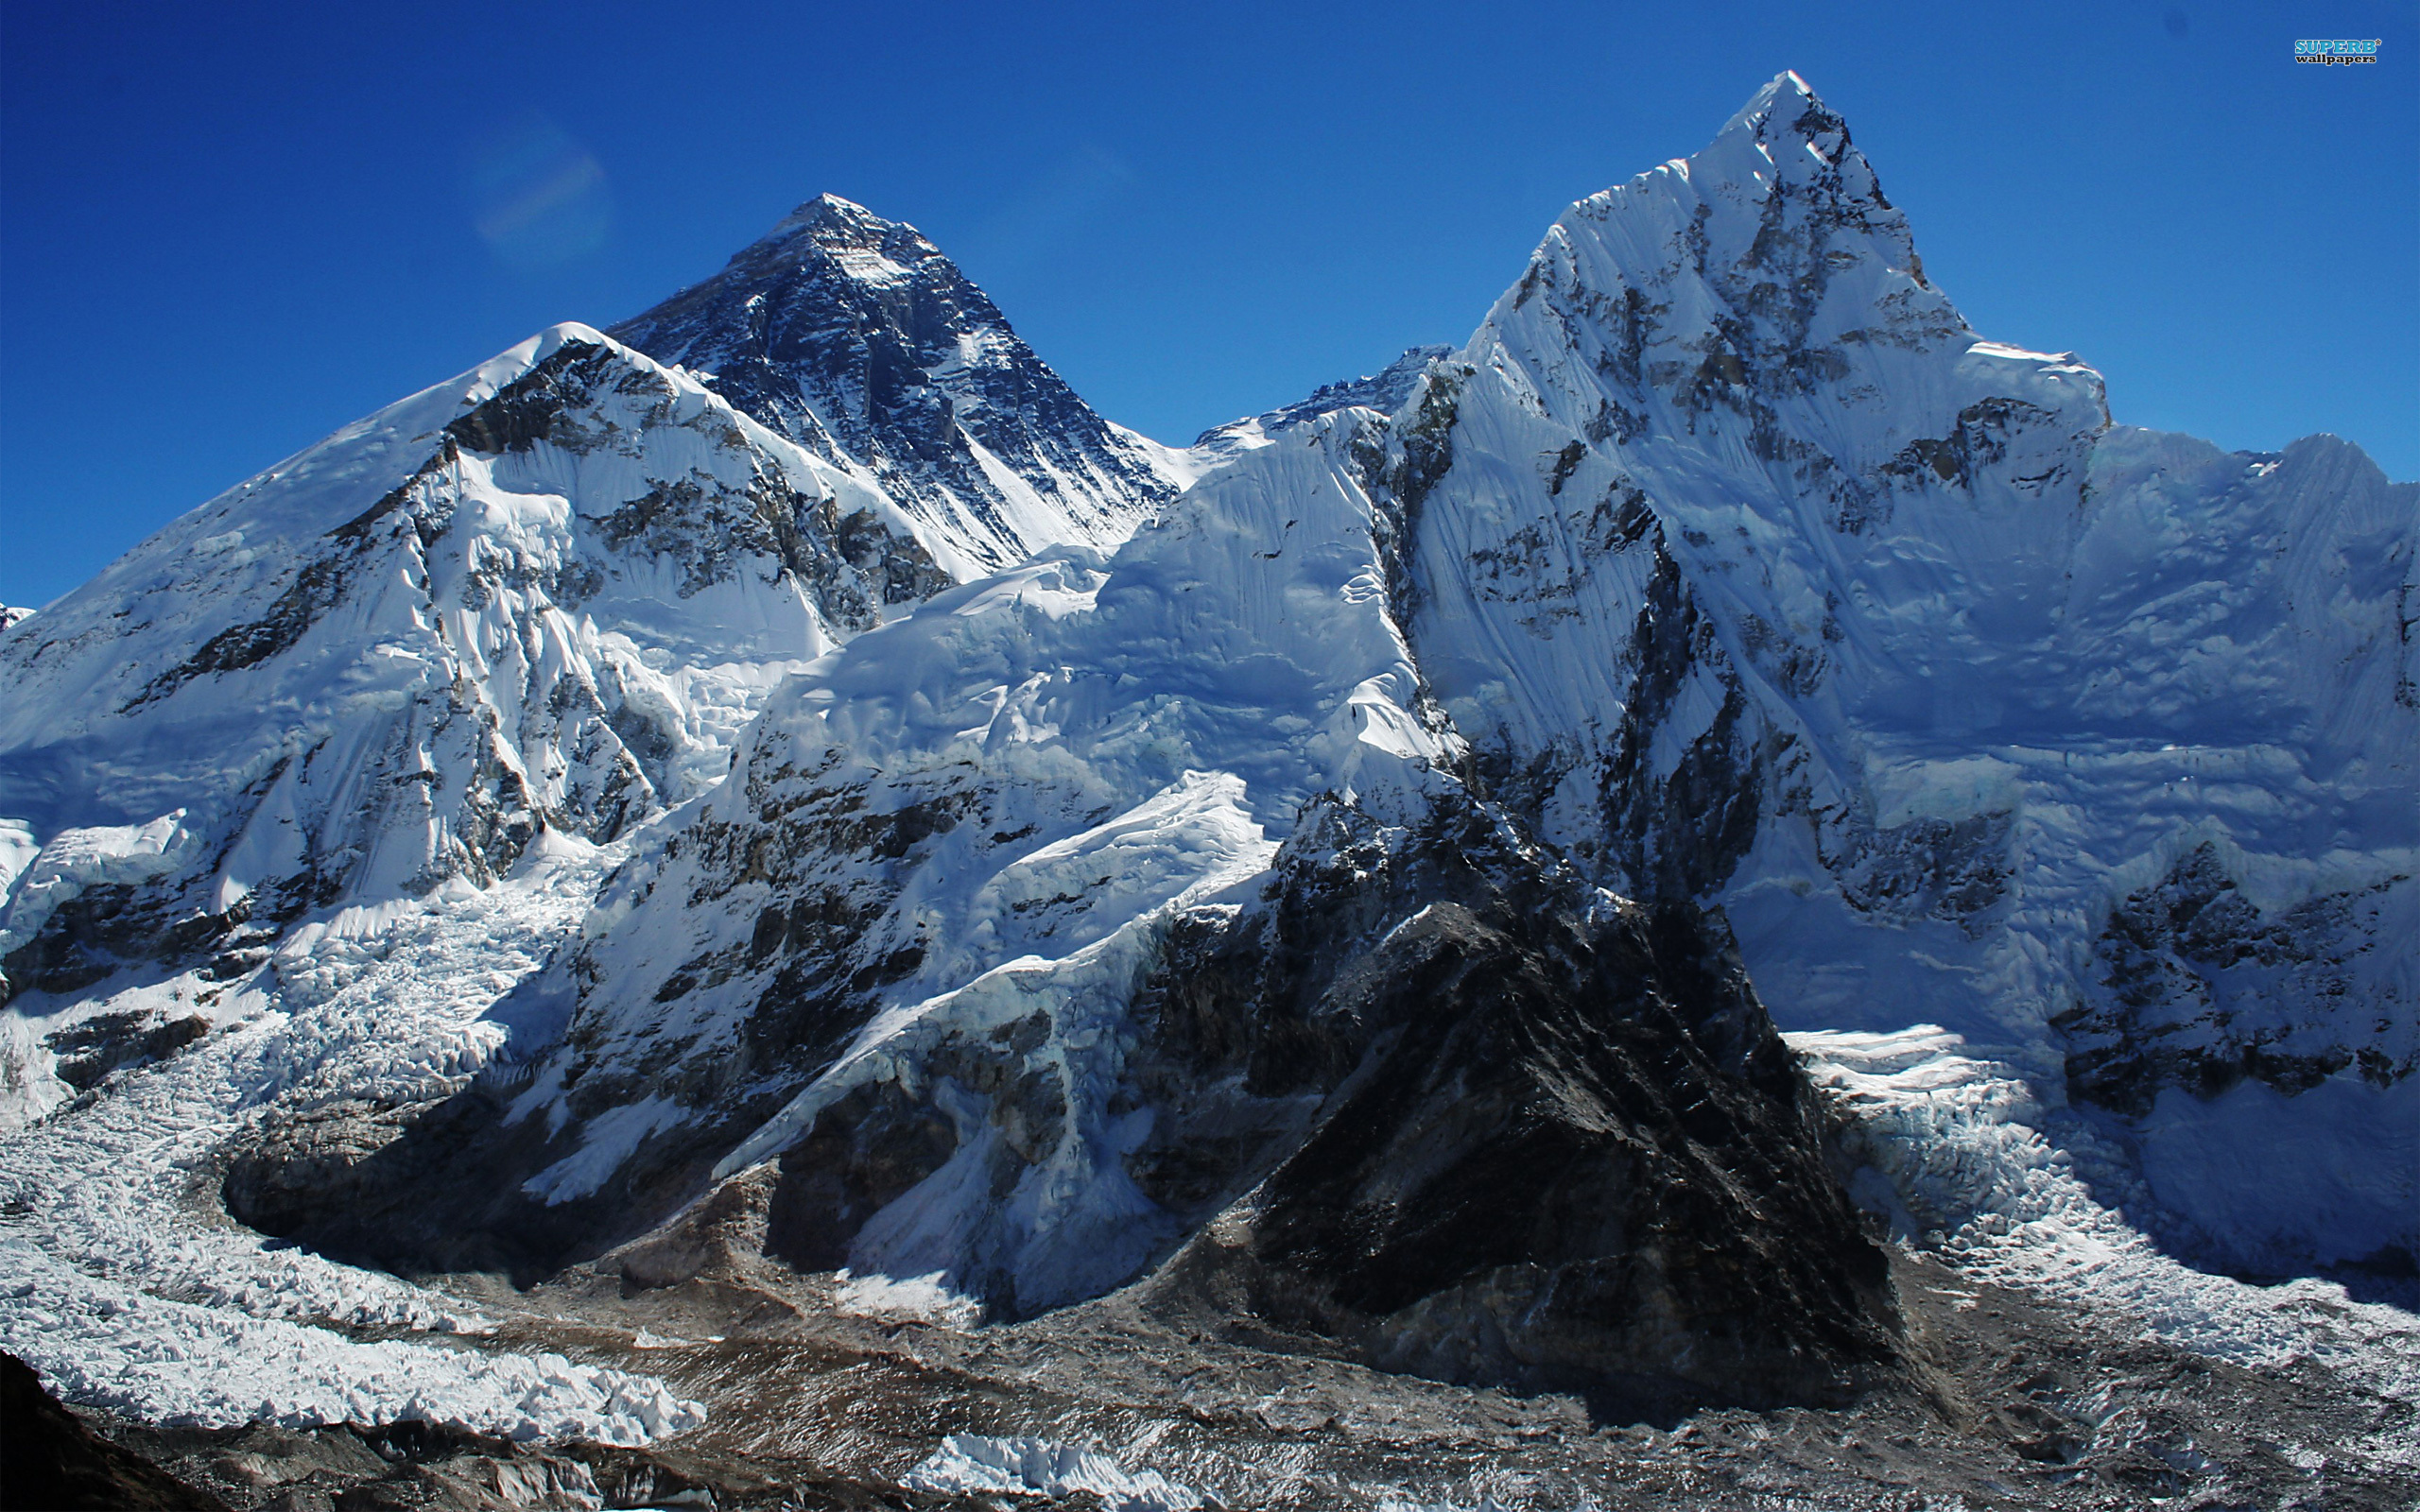 Download Mount Everest wallpaper